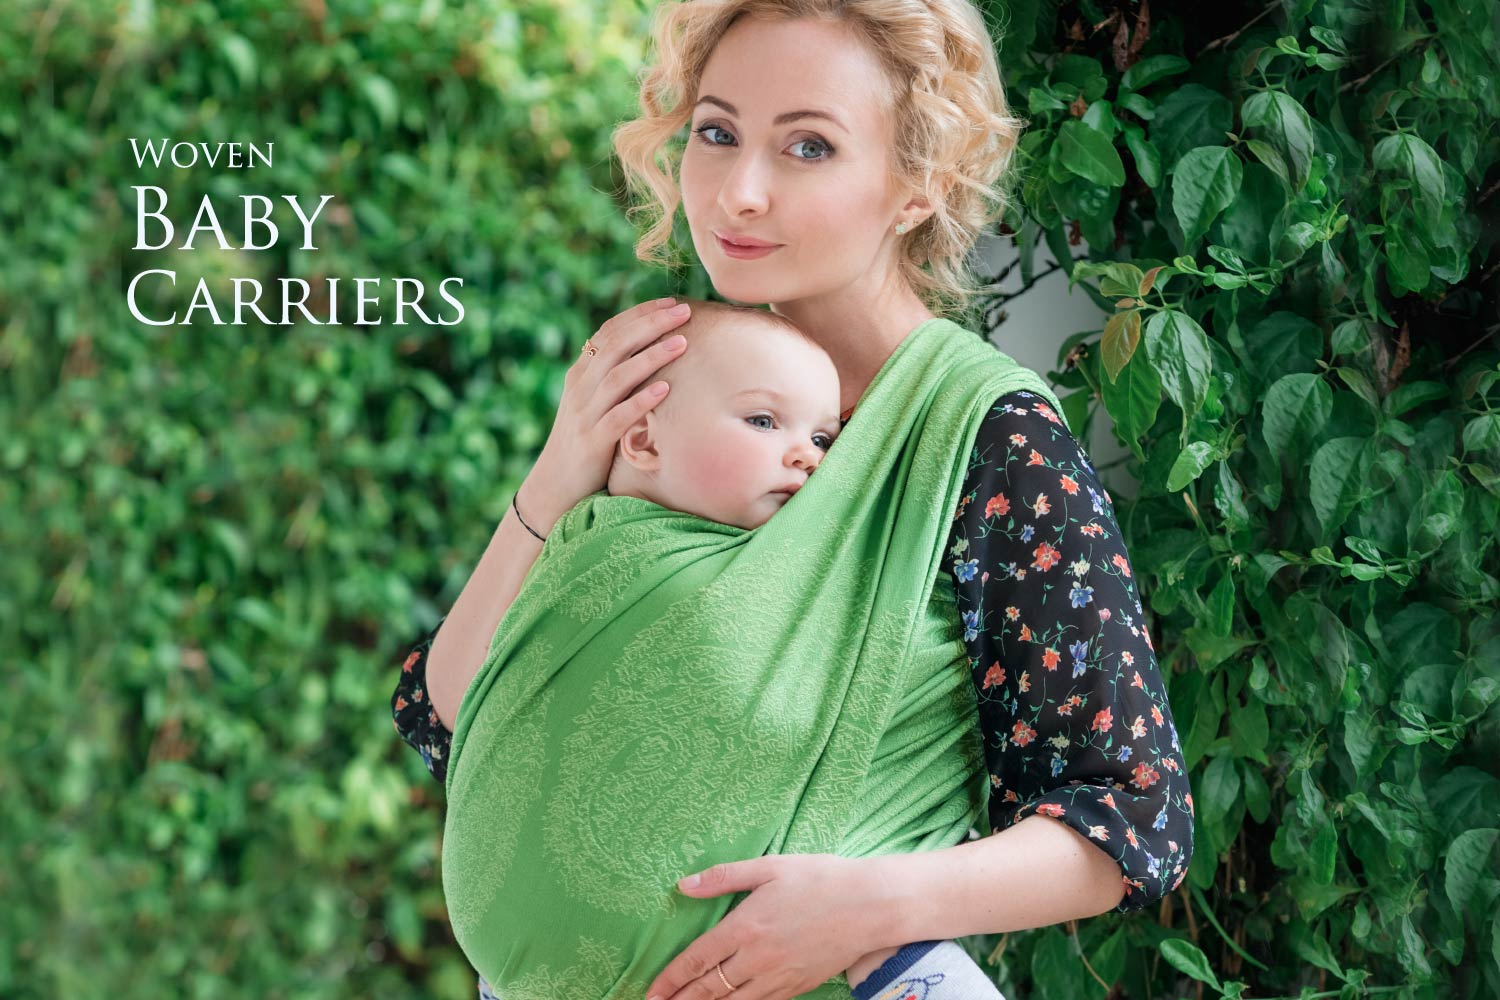 b59a20841d7 Diva Milano Baby Carriers and Baby Slings Designed in Italy